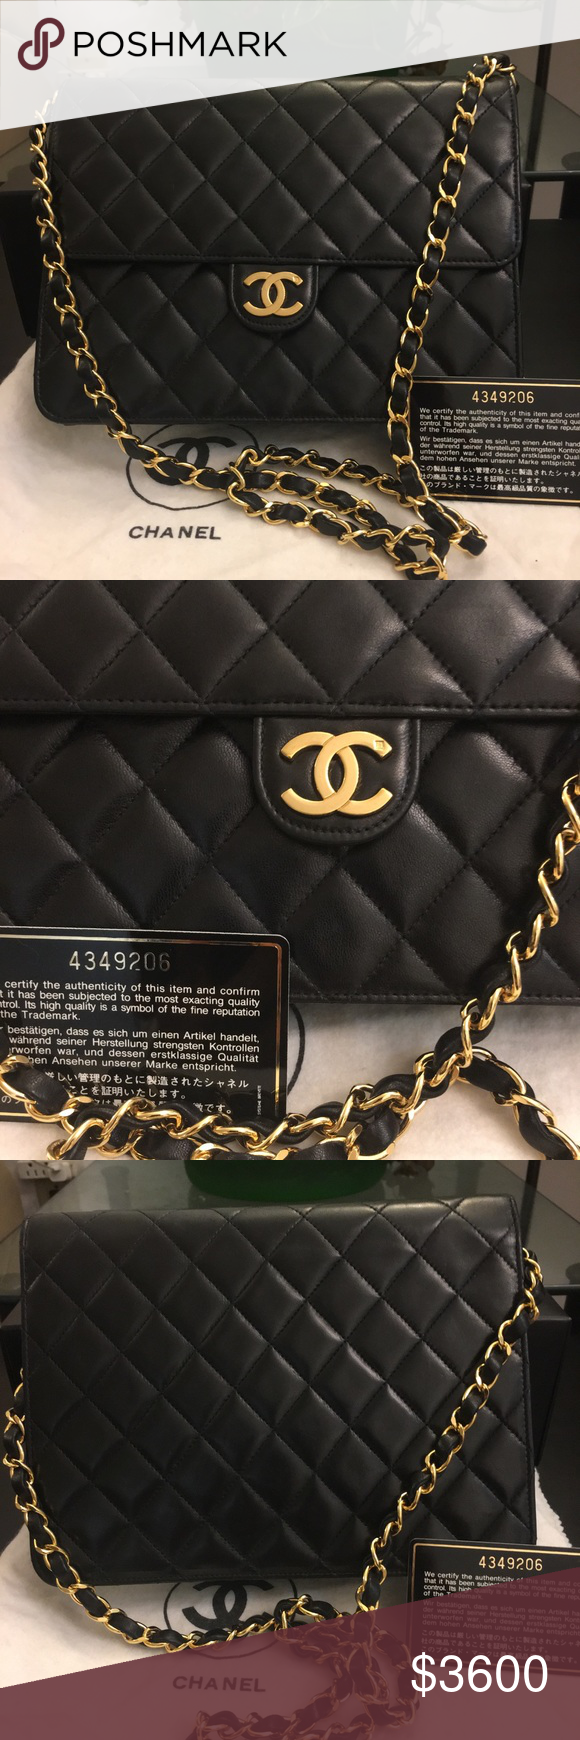 d3bf051814ef4 100% Authentic Chanel Bag 100% Authentic Chanel Quilted Matelasse 22 CC Logo  Push Lack